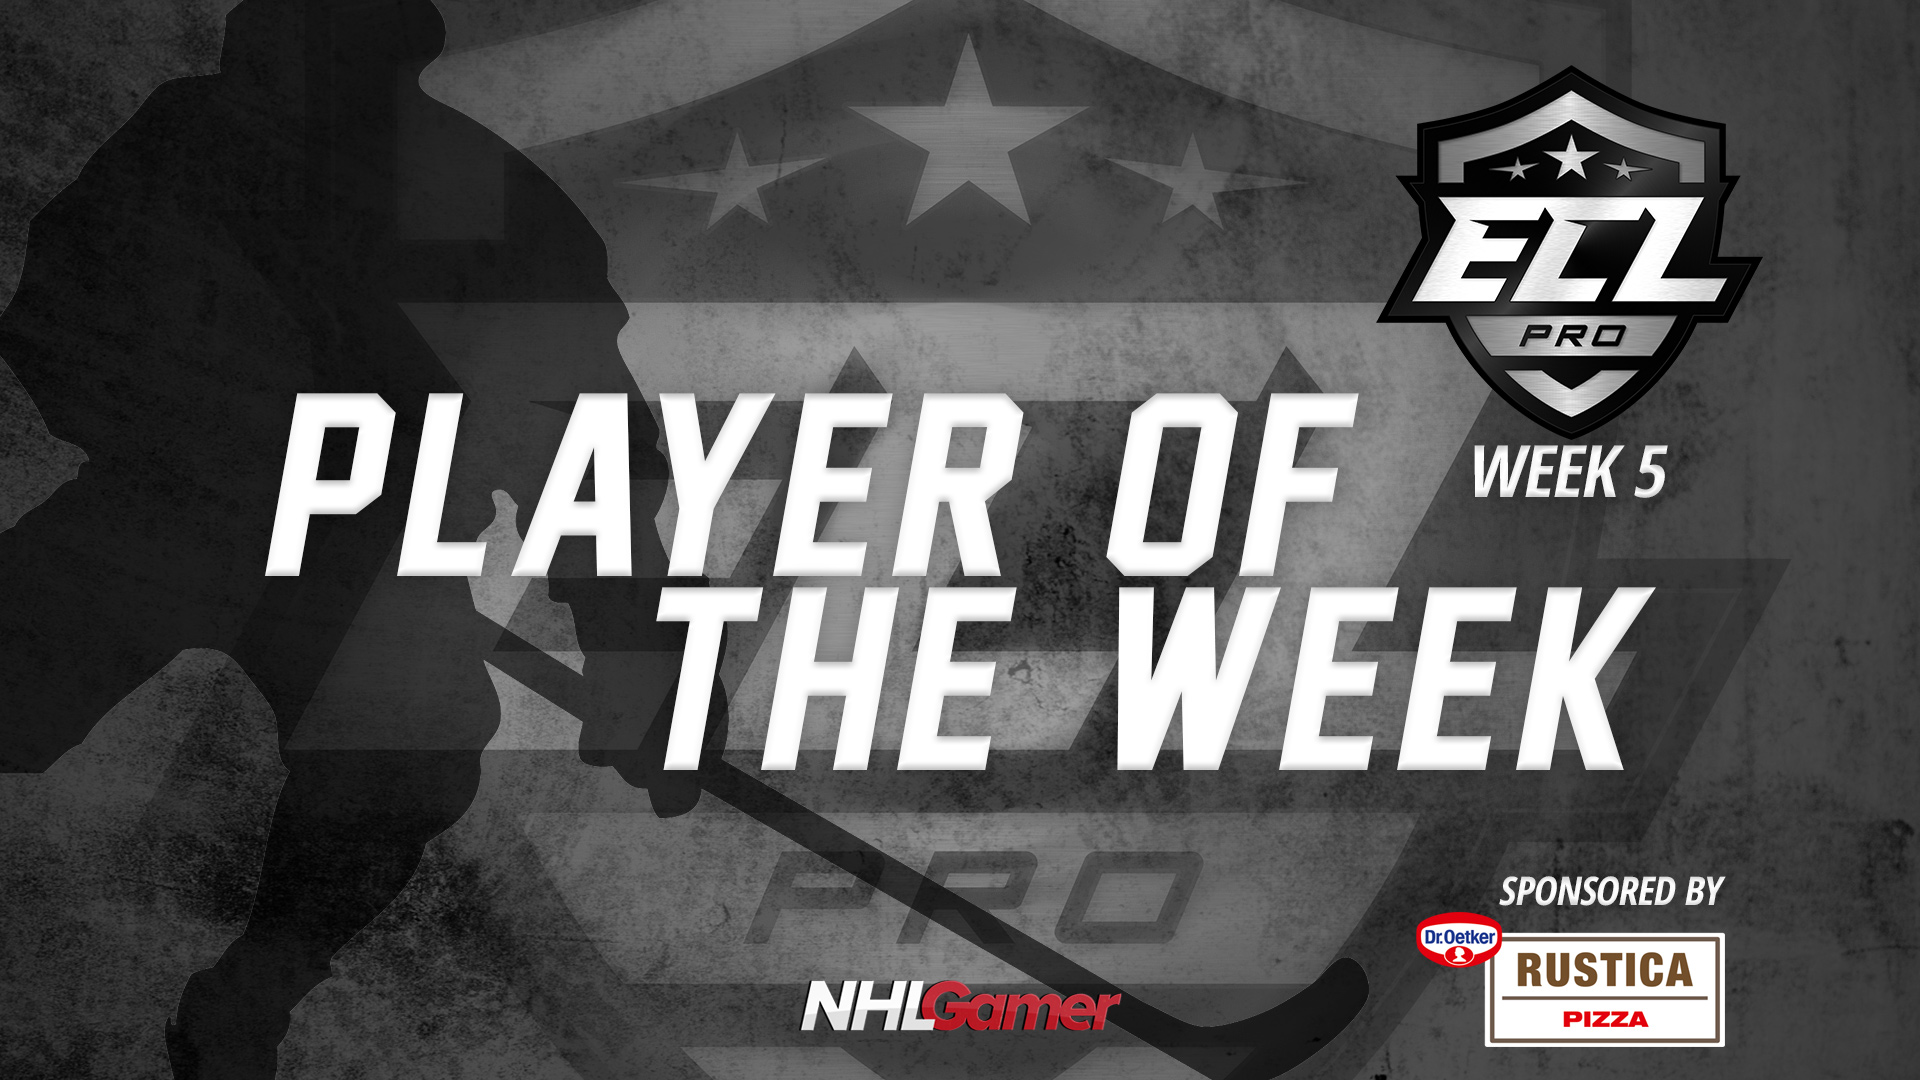 ECL_8_Pro_Player_of_the_week_5.jpg